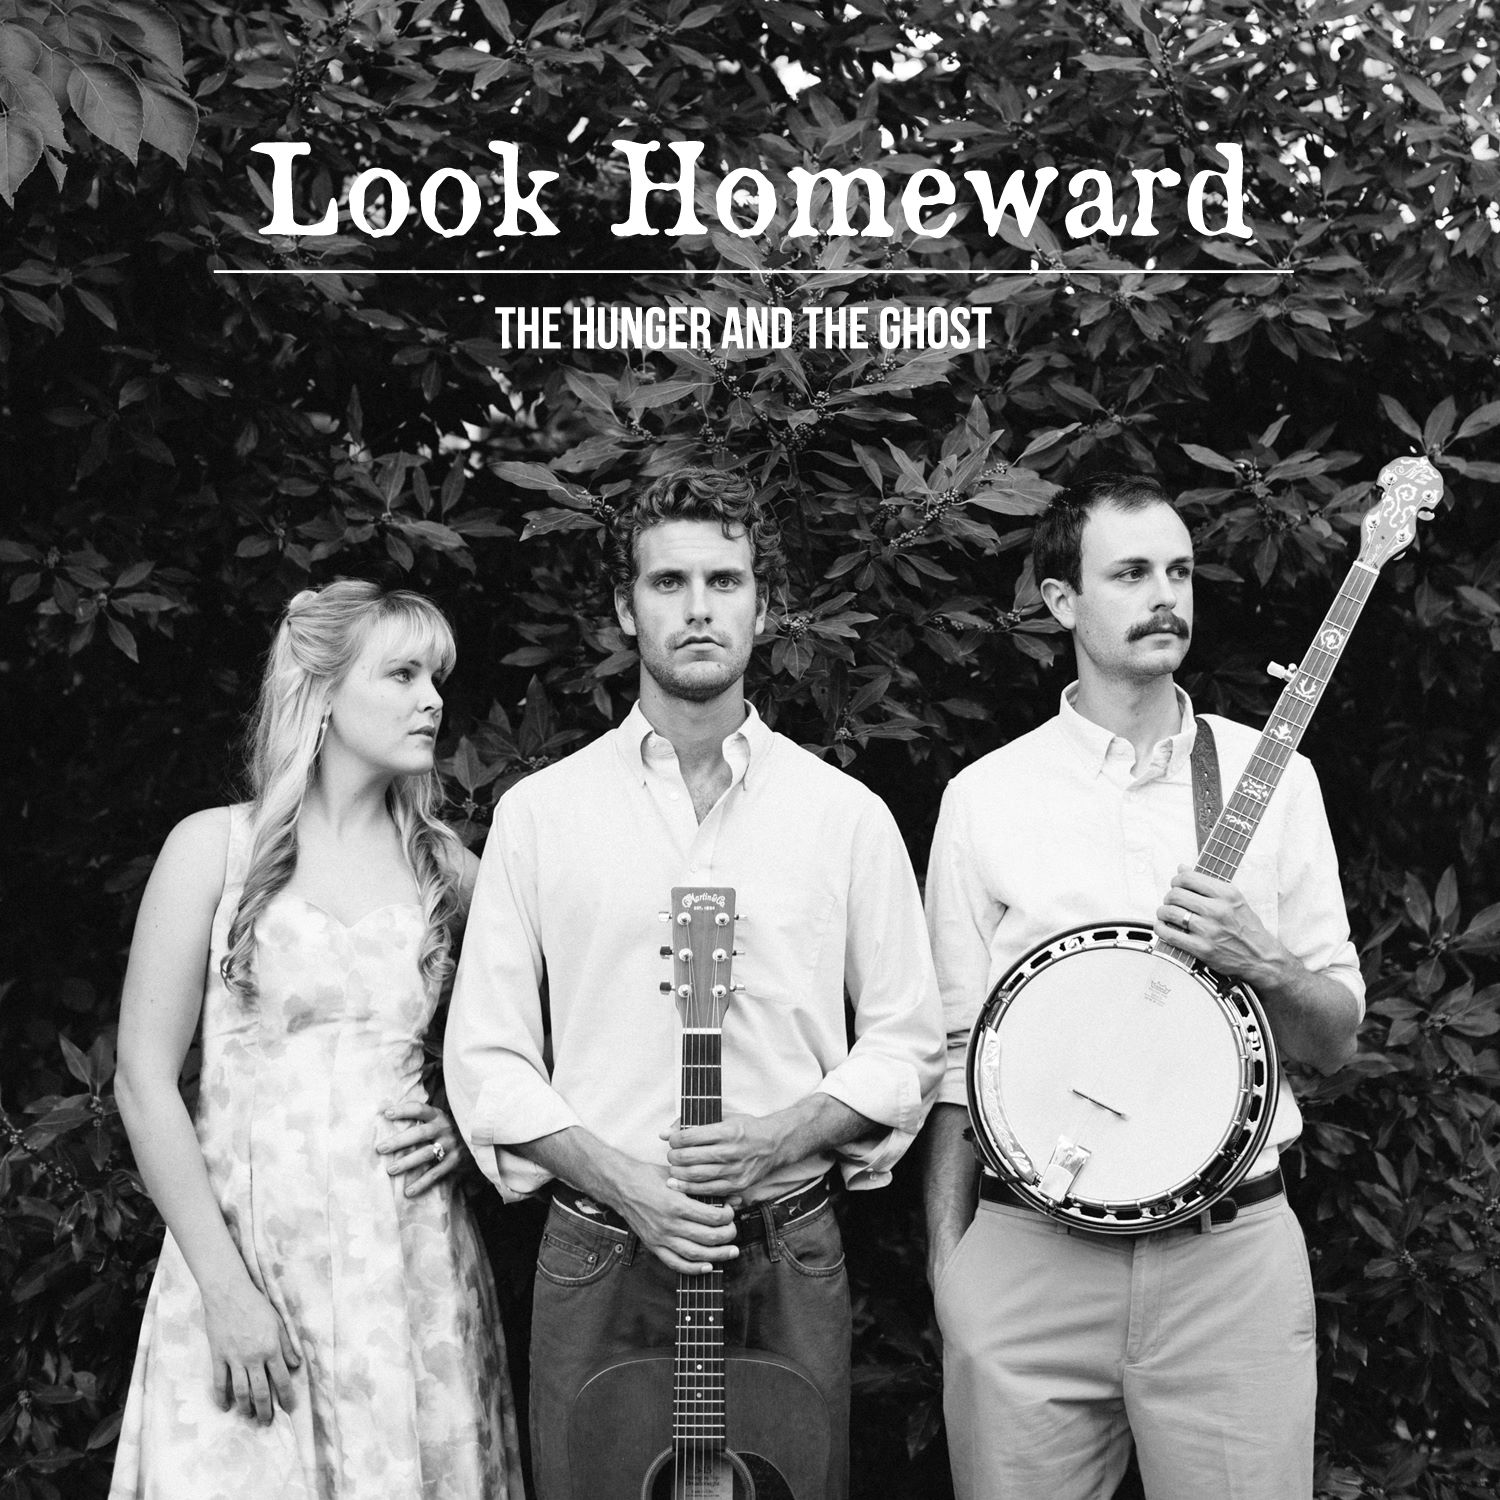 Look Homeward folk band